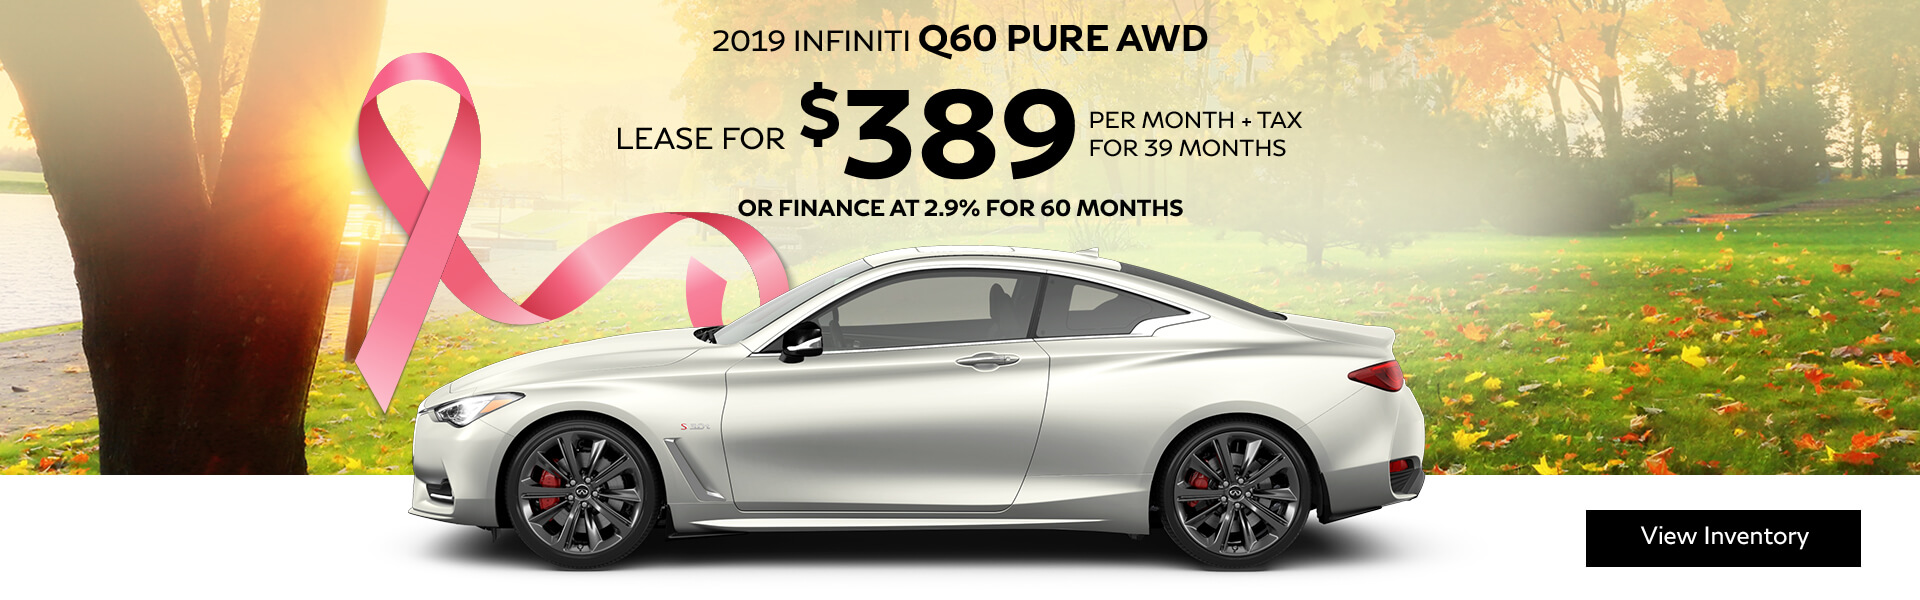 Q60 PURE - Lease for $379